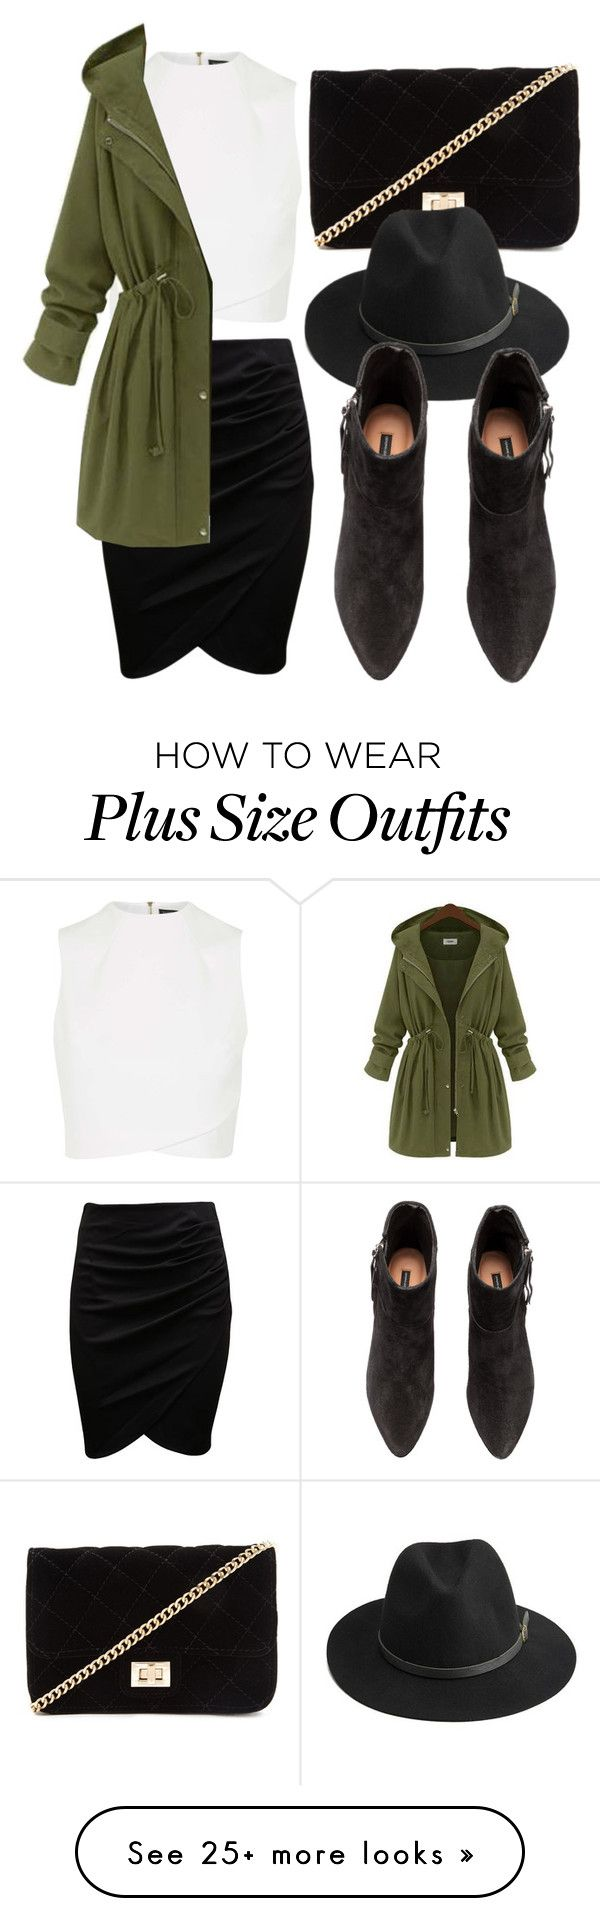 """Untitled #953"" by leandrarenee on Polyvore featuring Topshop, Forever 21, BeckSöndergaard and H&M"